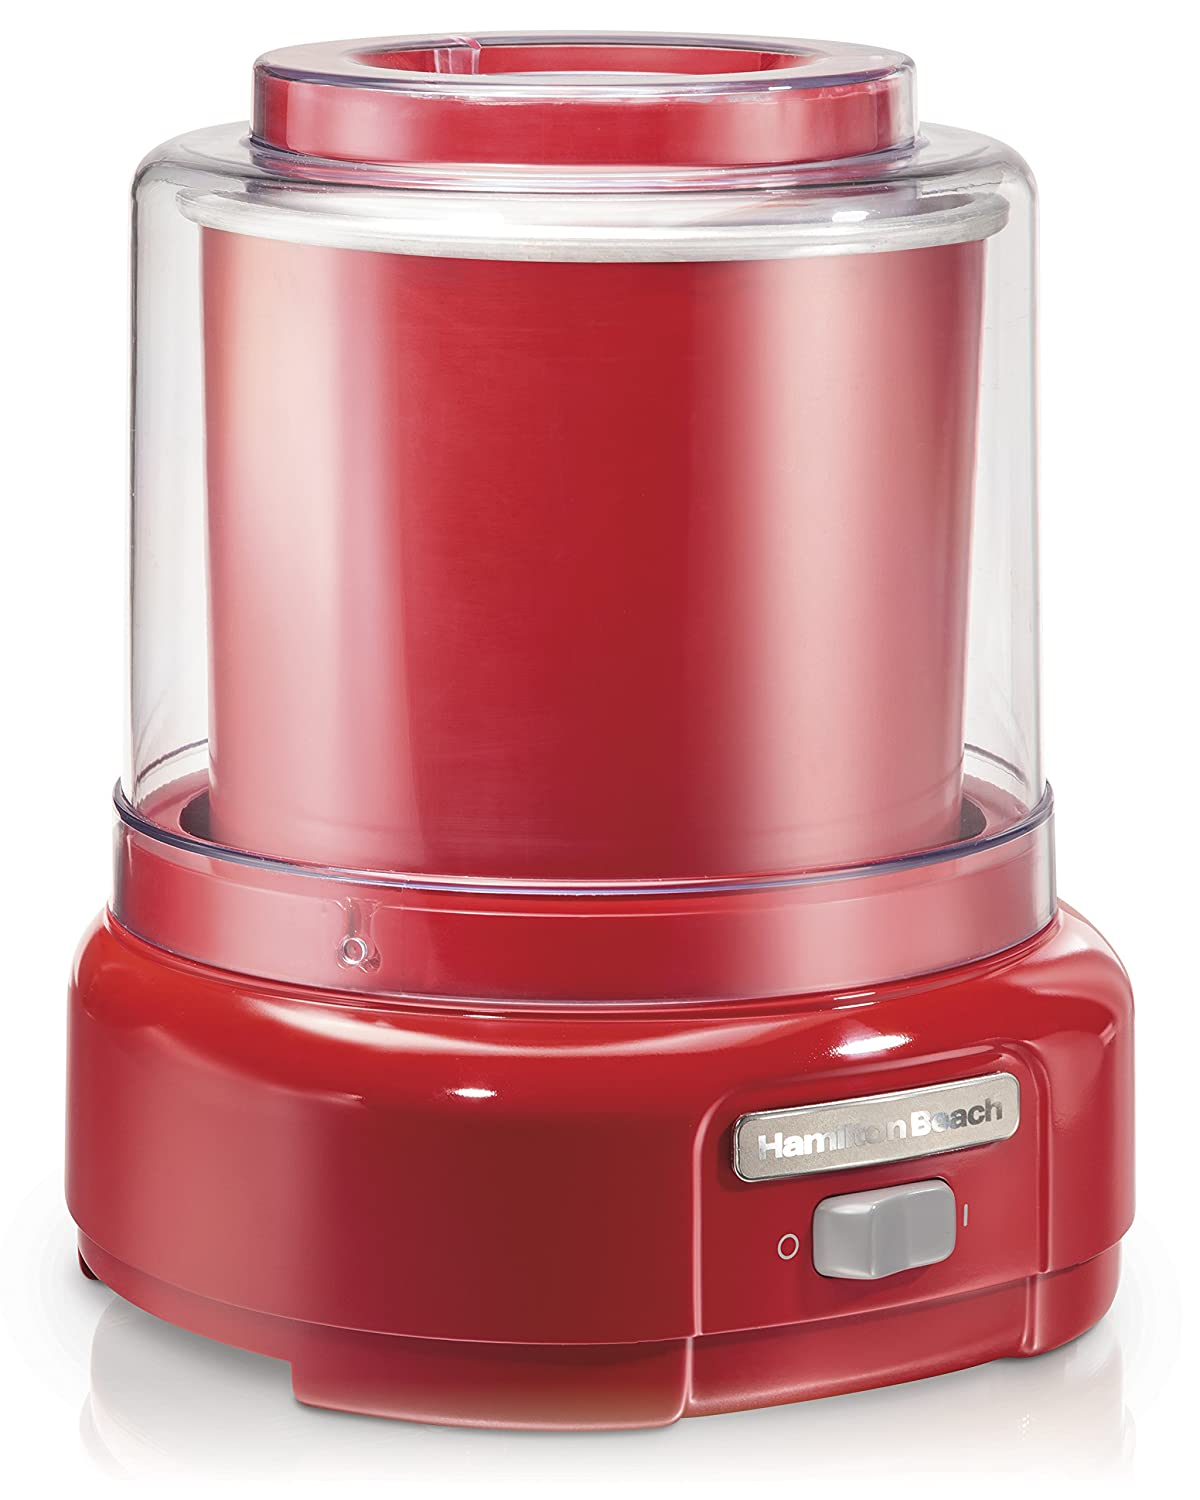 Hamilton Beach Ice Cream Maker Black Friday Deal 2019